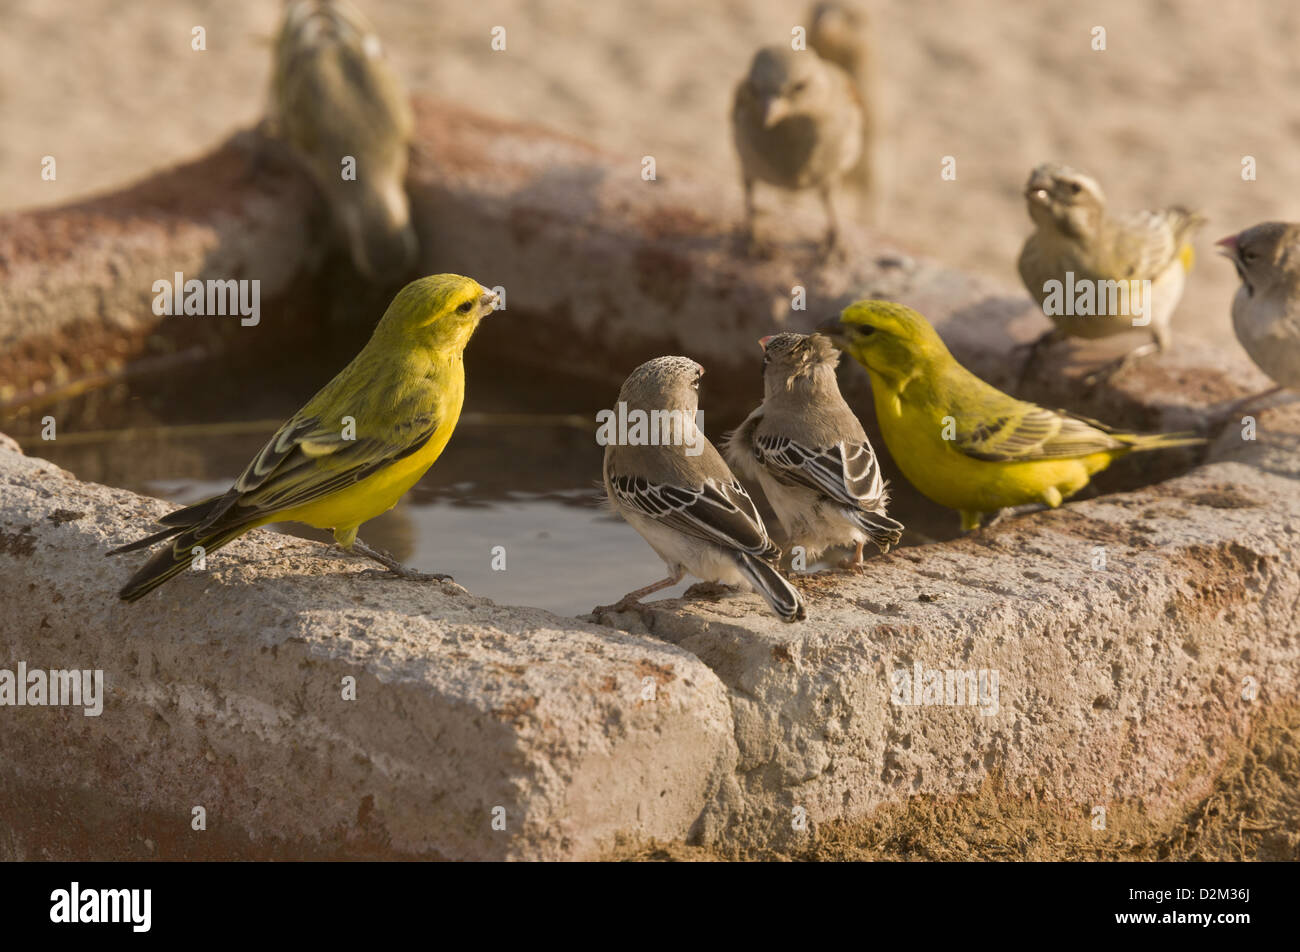 Yellow Canaries and Scaly-feathered Finches drinking at waterhole, Kalahari desert, South Africa - Stock Image